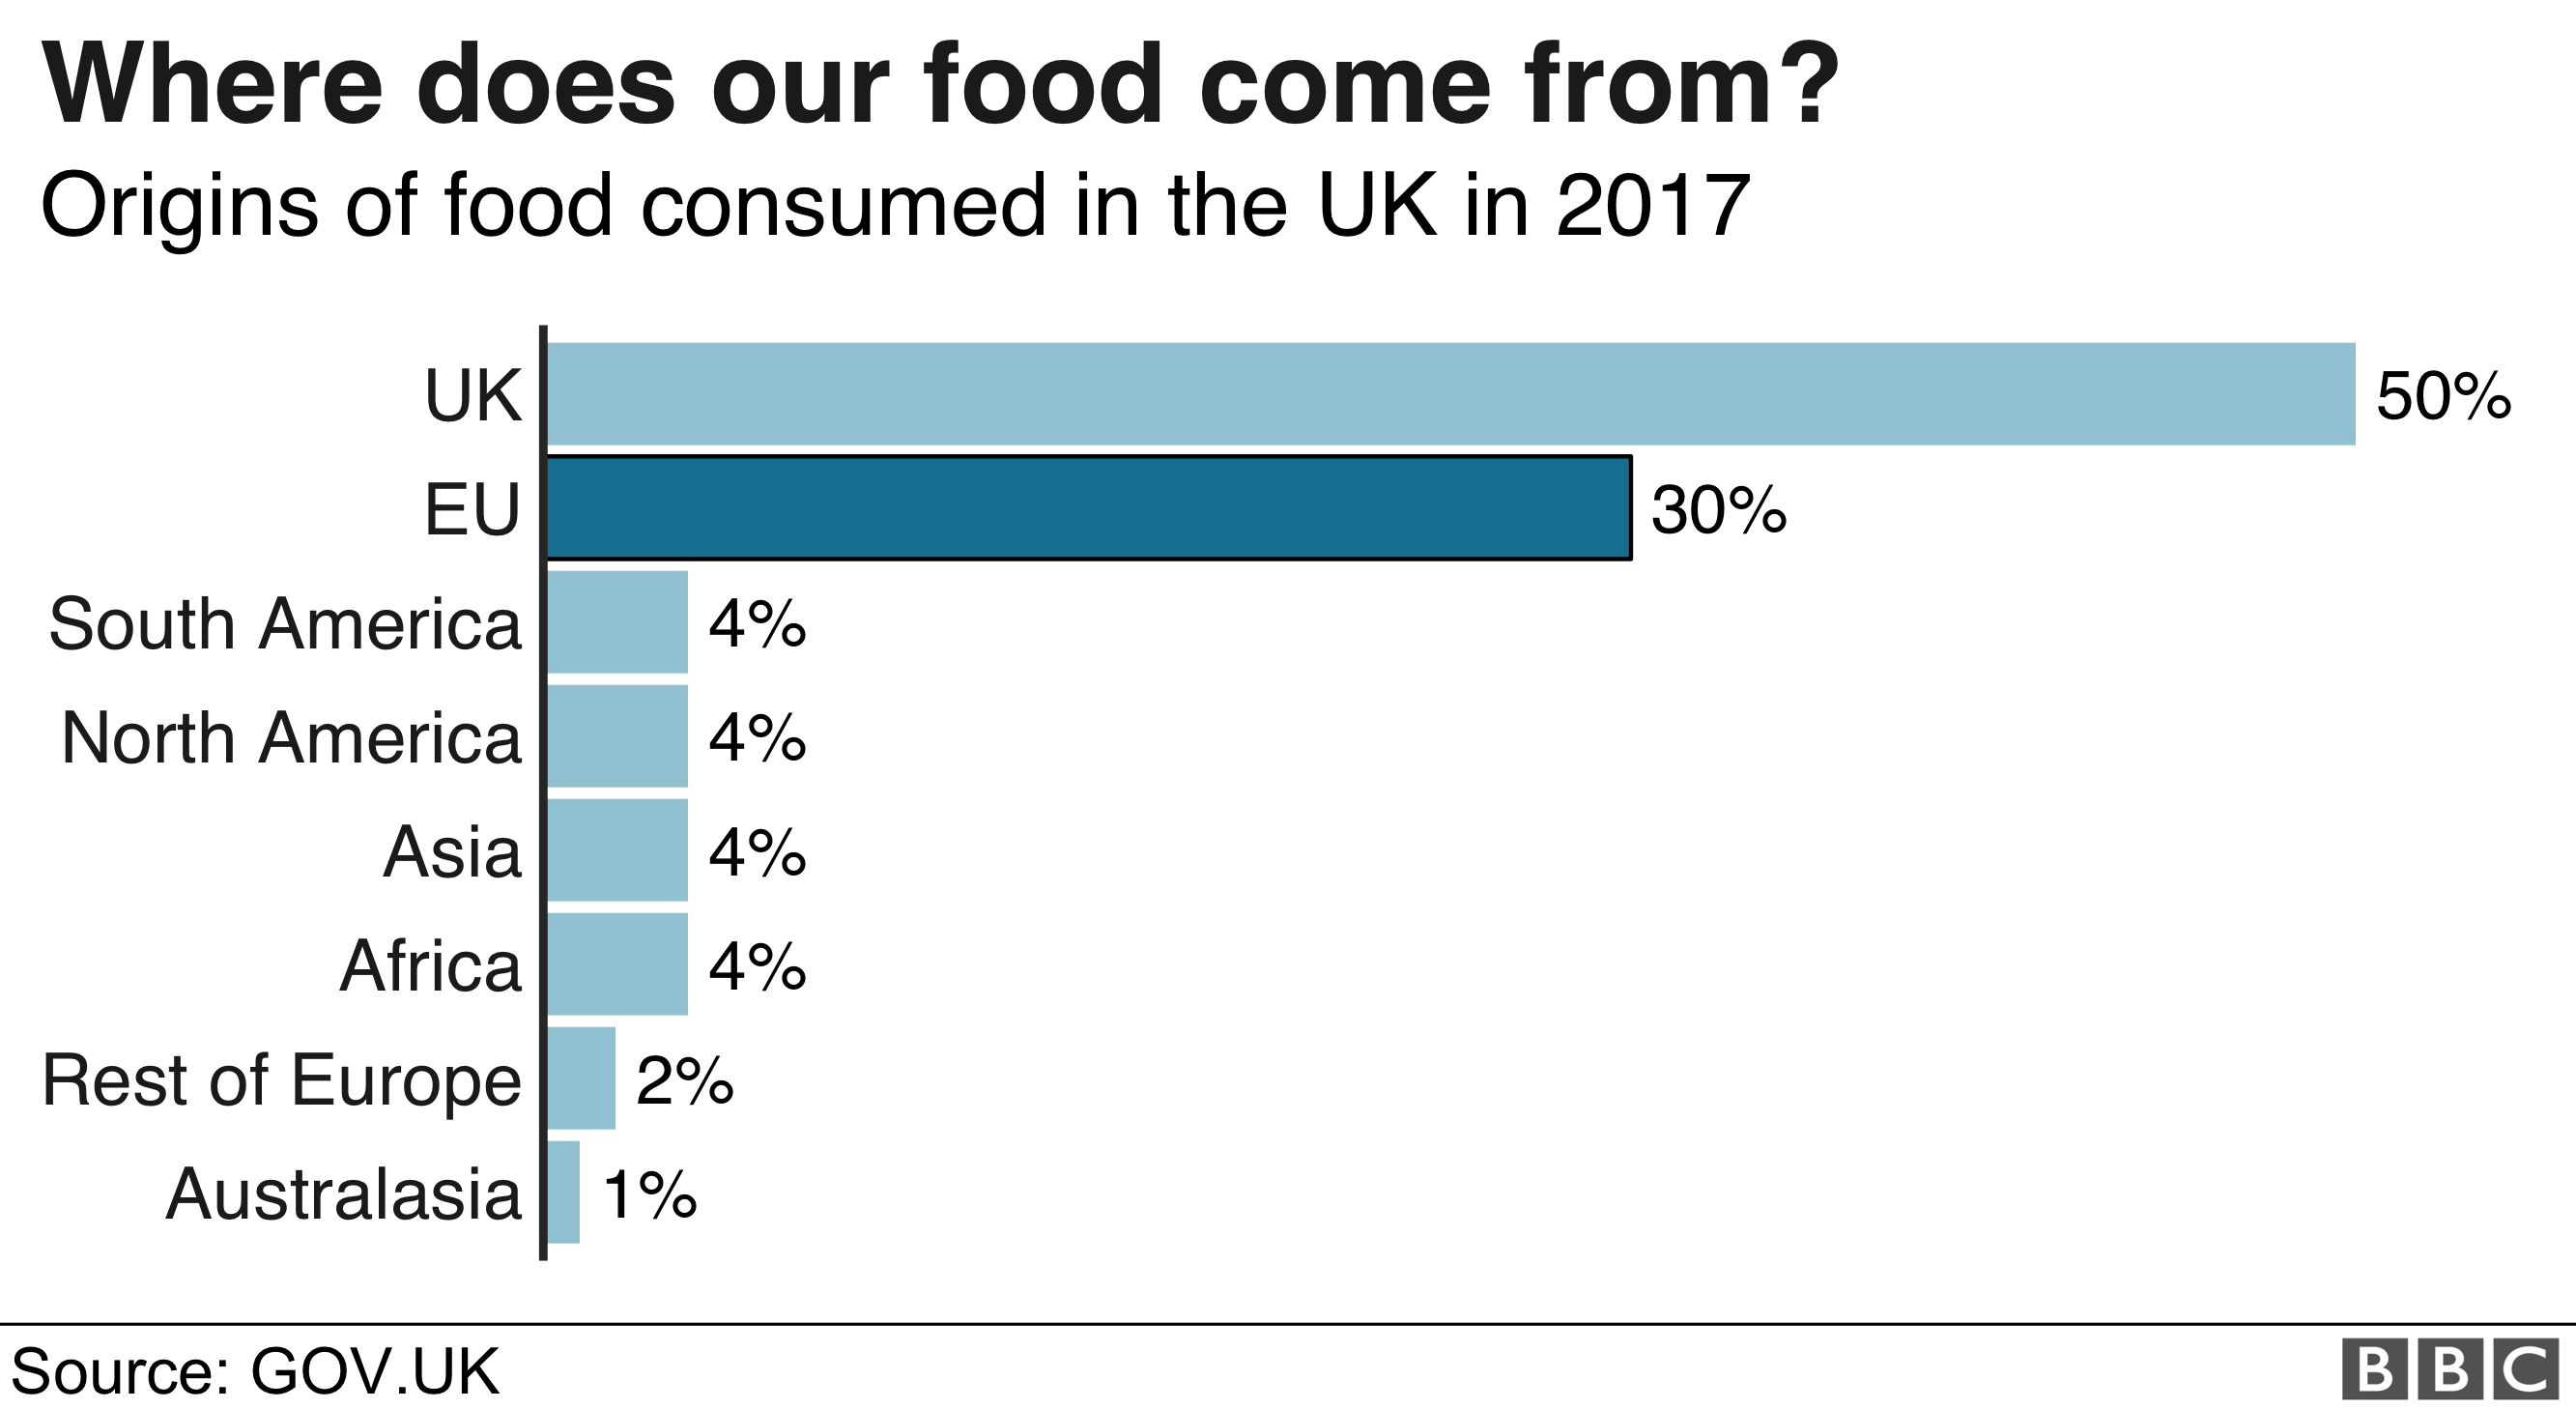 UK foods come from